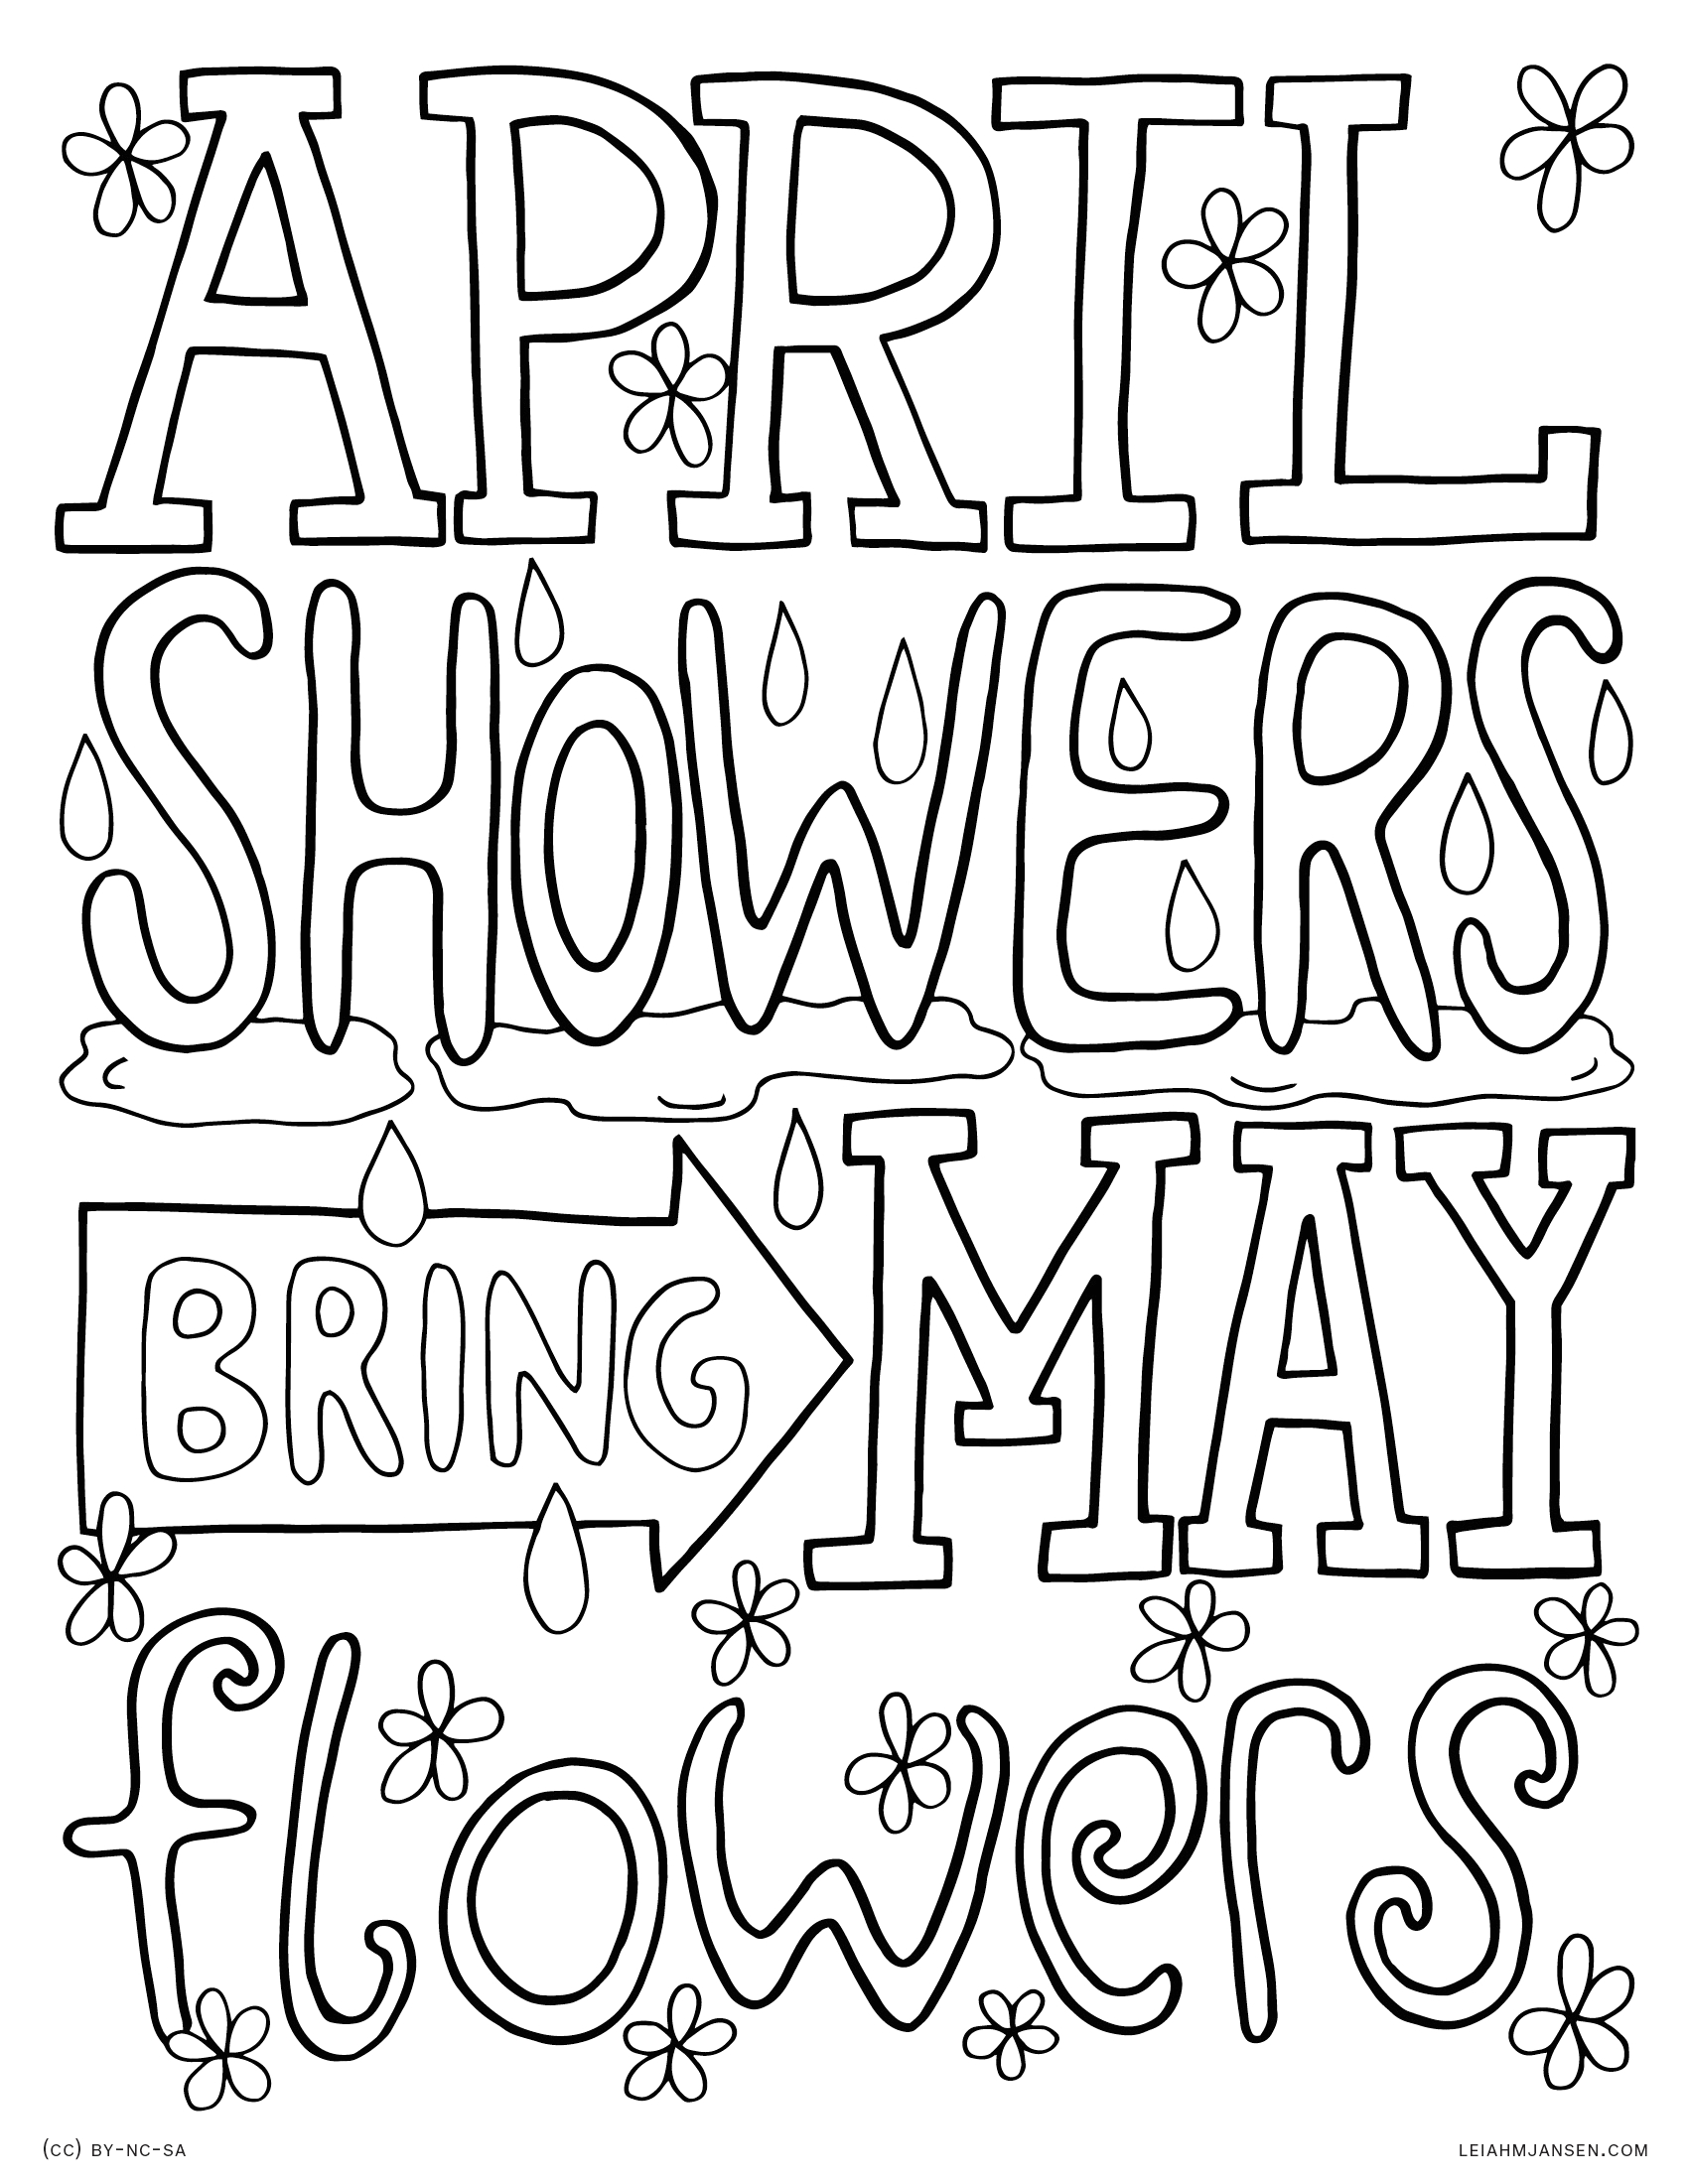 April Showers Bring May Flowers Free Coloring Pages April Showers Bring May Flowers Coloring Page at